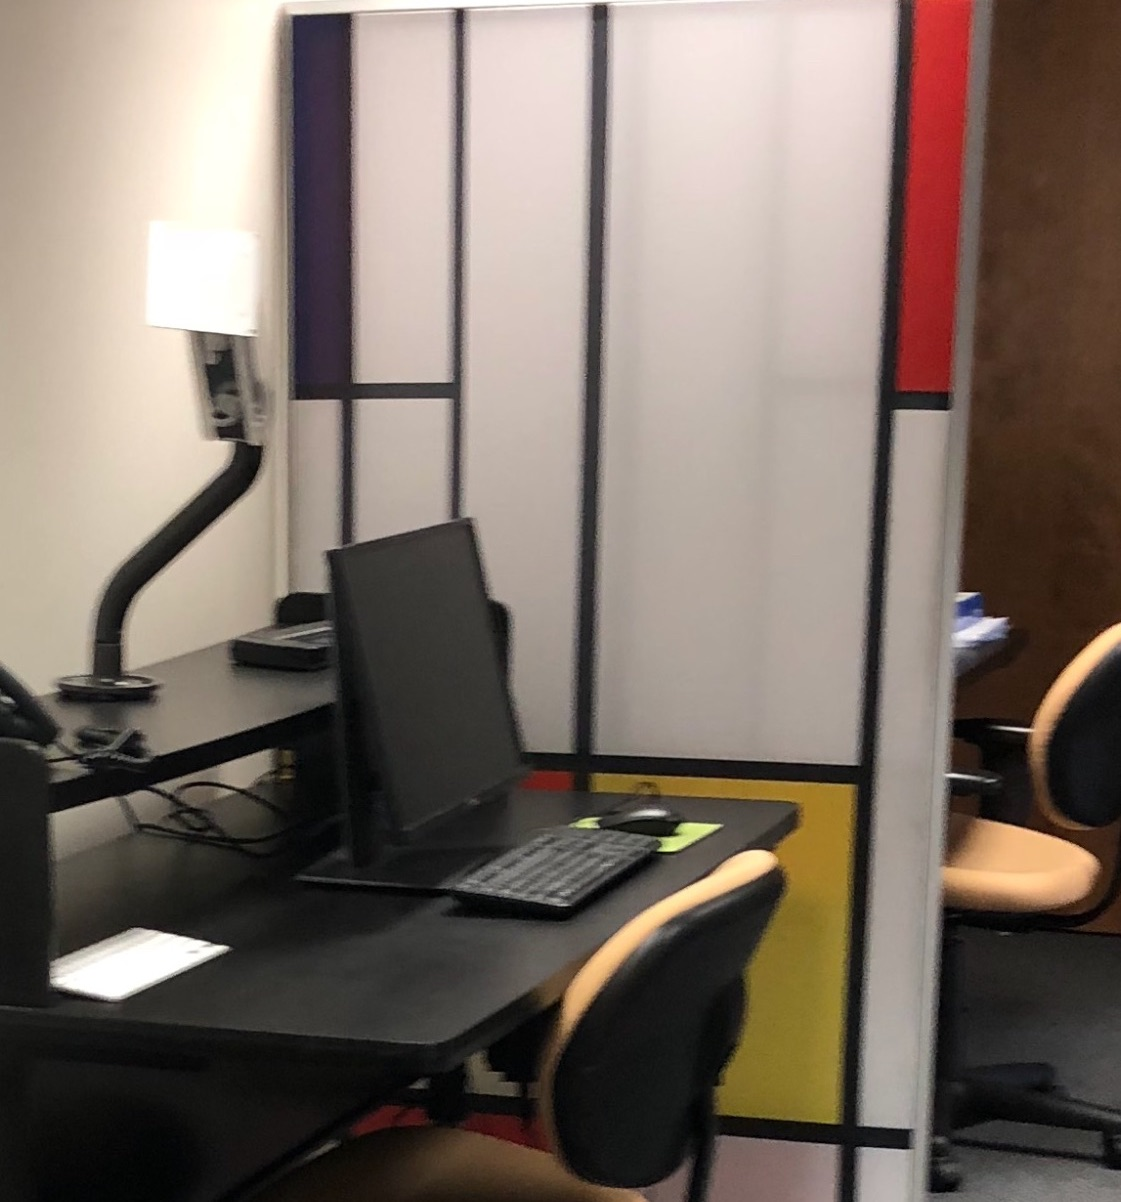 A two tiered desk with a computer on first tier and monitor arm on the second tier. A 5'x3' created with white, red and yellow squares plexiglass framed in by navy stripes creates a screen placed between two desks.